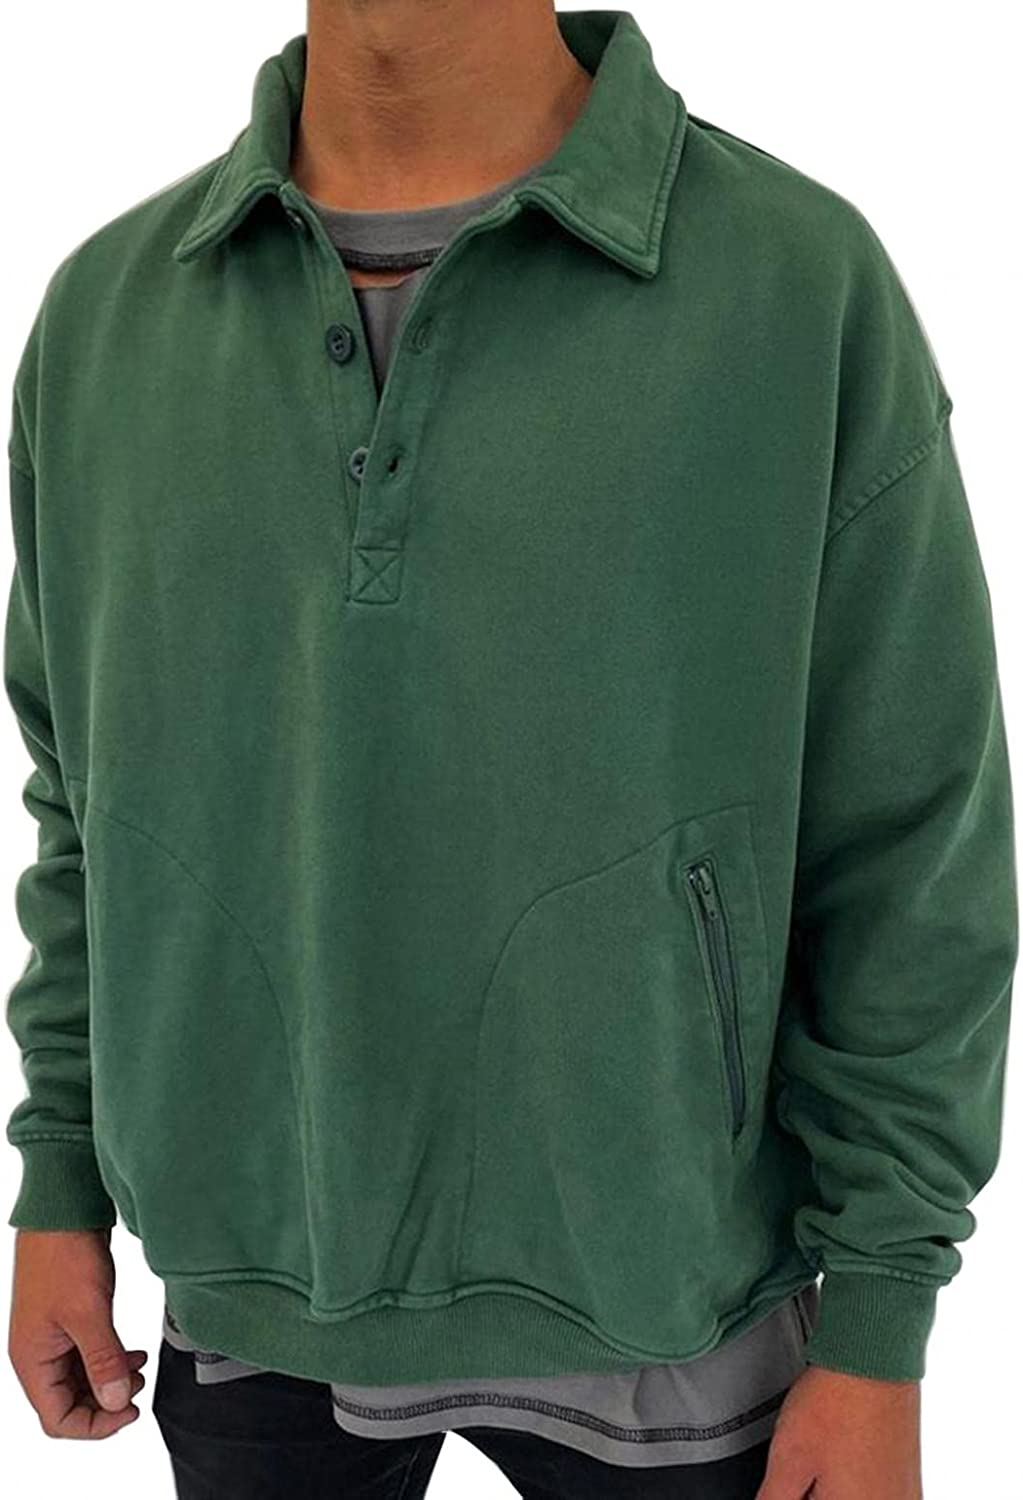 XUNFUN Men's Sweatshirts Casual Loose Fit Stand Collar Quarter Button Solid Color Pullover Tops Blouse with Pockets